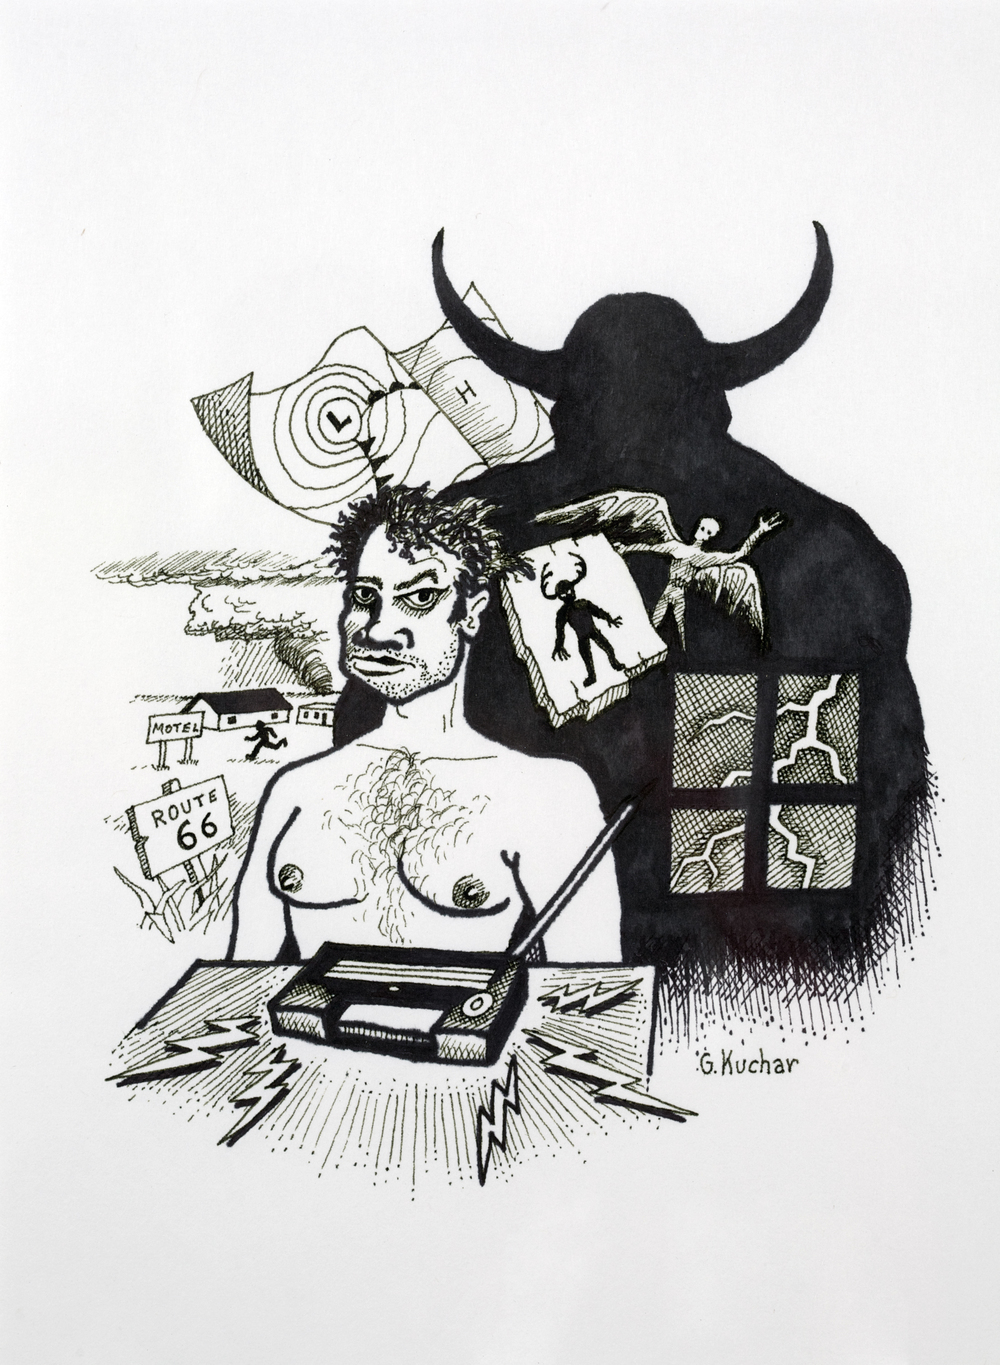 George Kuchar,  Demon Domain , 1996, ink on paper, 12 x 9 inches